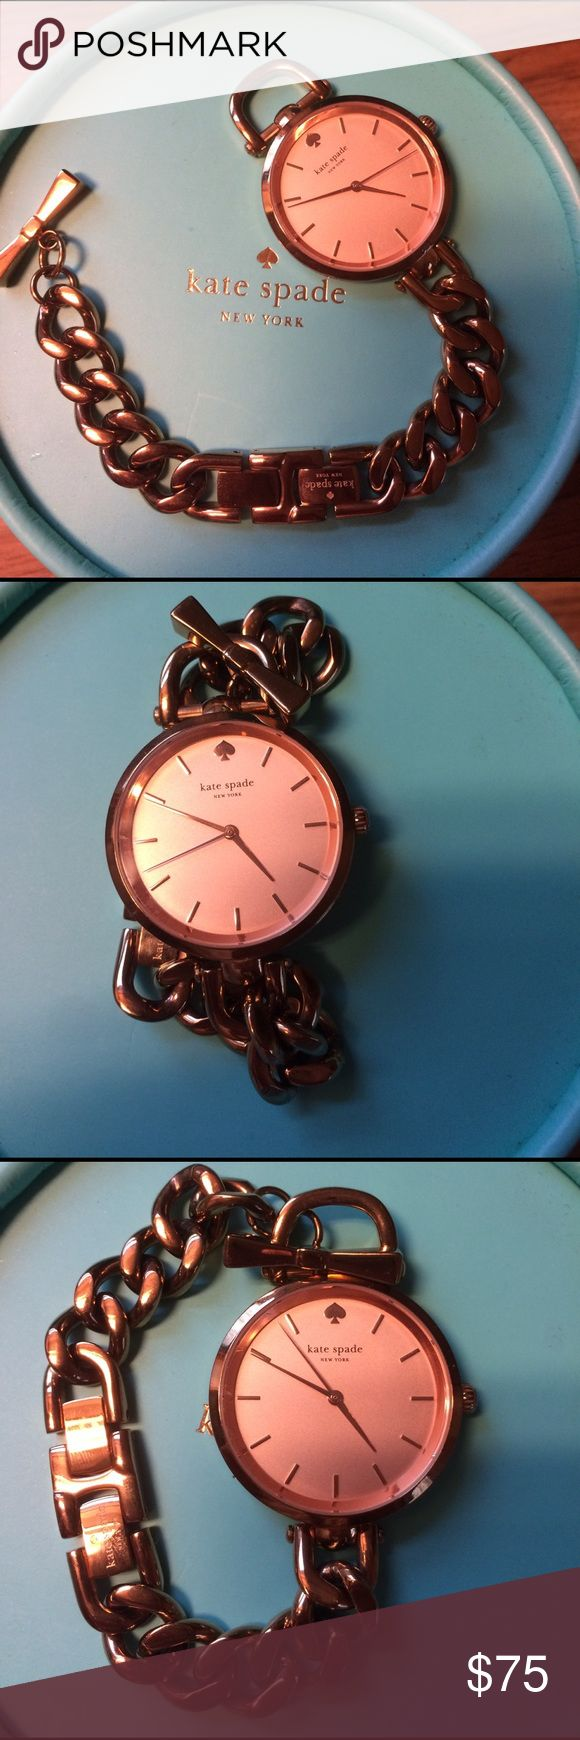 Kate Spade Watch Rose gold watch with additional links, easy to take on and off. Bracelet like watch with bow clasp. kate spade Jewelry